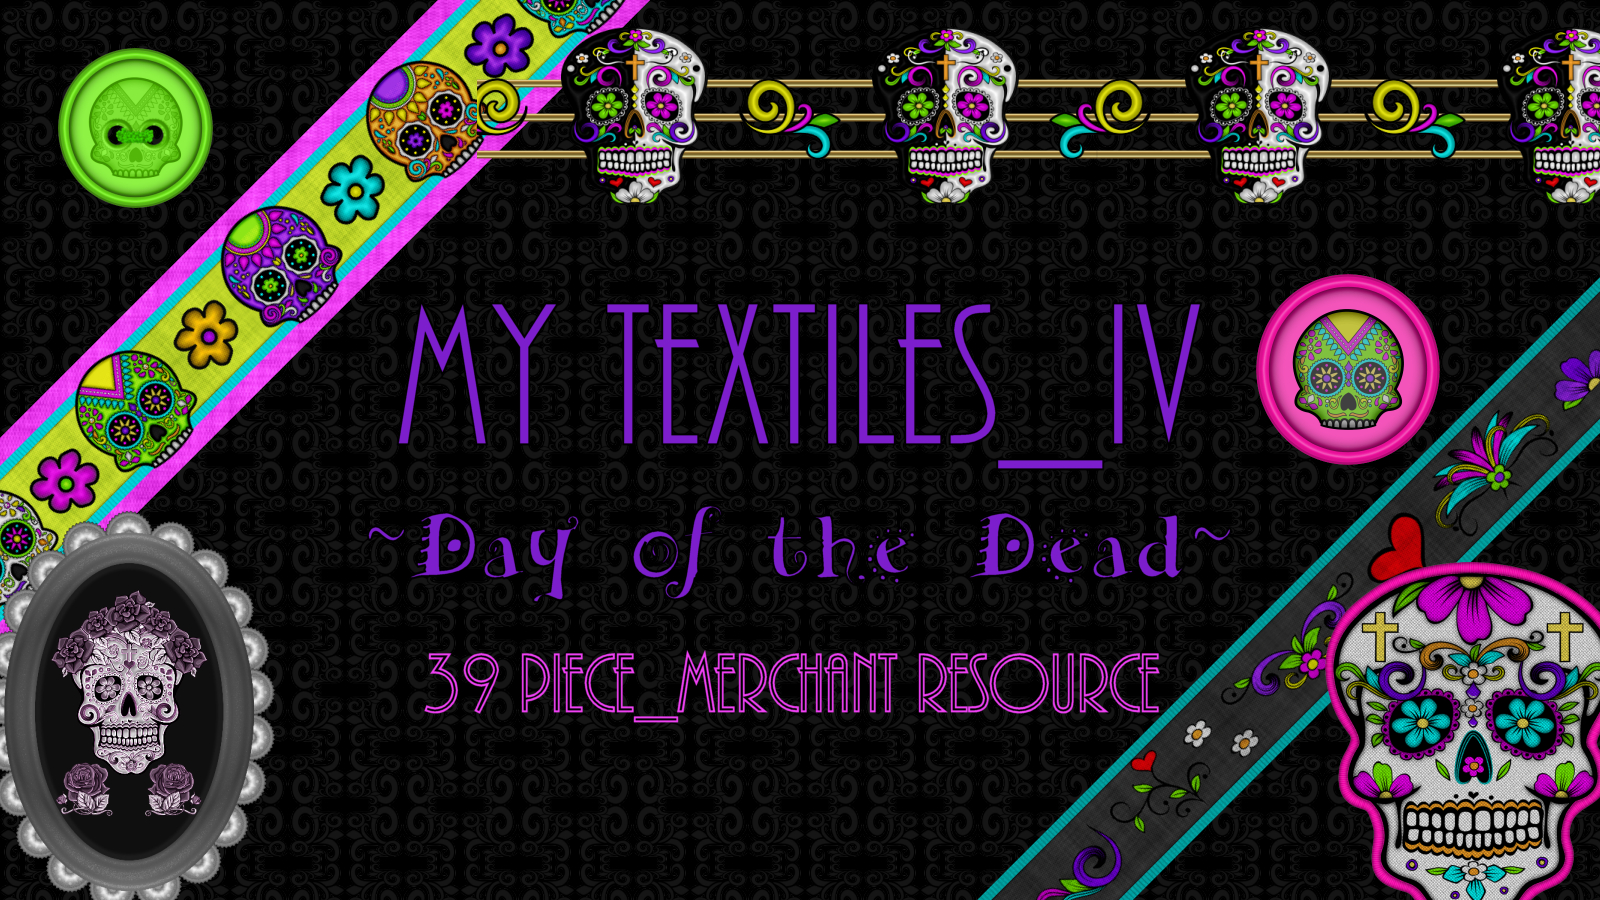 My Textiles IV_Day of the Dead_MR